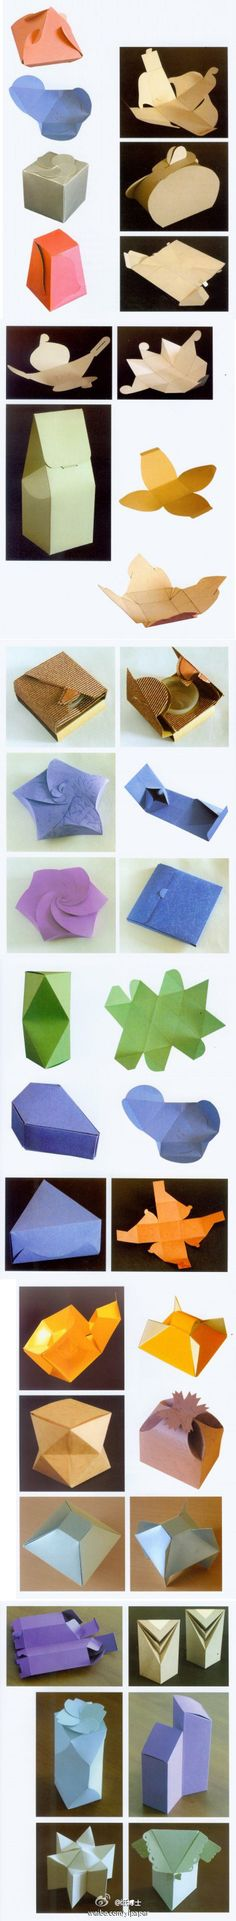 Paper boxes created with origami folds! Origami Paper, Diy Paper, Paper Art, Paper Crafts, Origami Boxes, Paper Box Template, Box Templates, Paper Gift Box, Paper Boxes